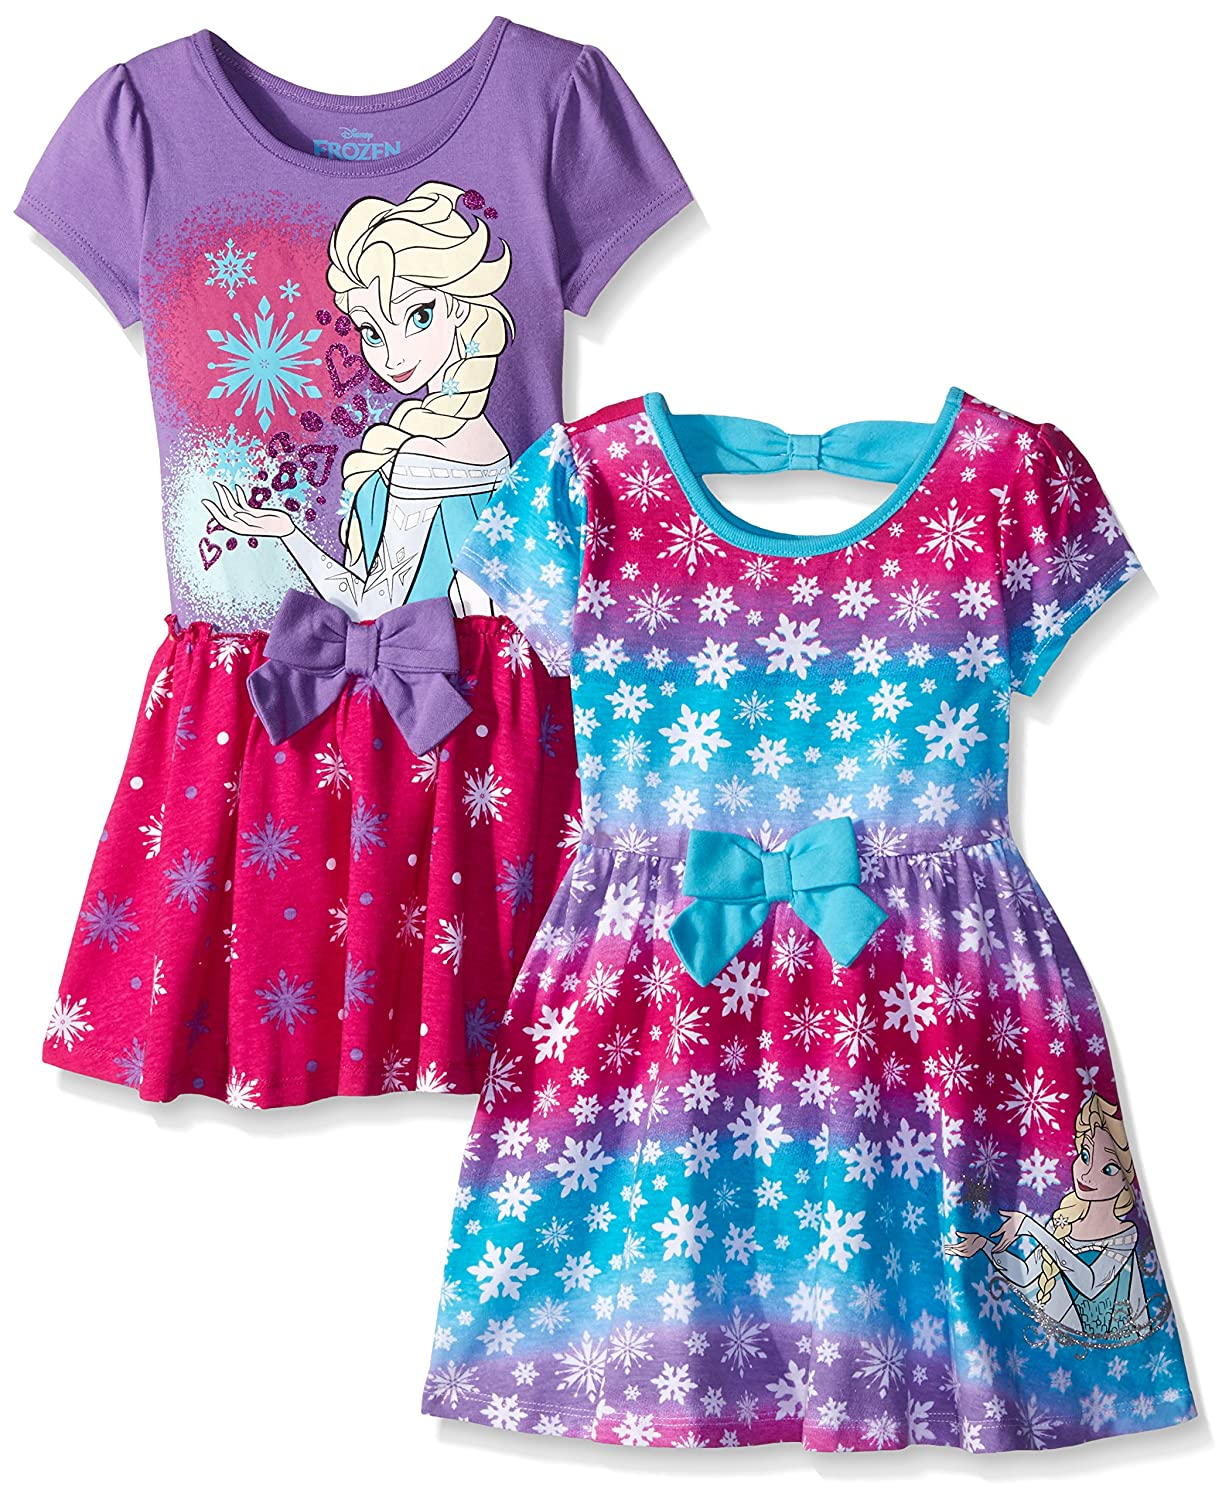 Disney Girls Pack Frozen Dresses Image 3